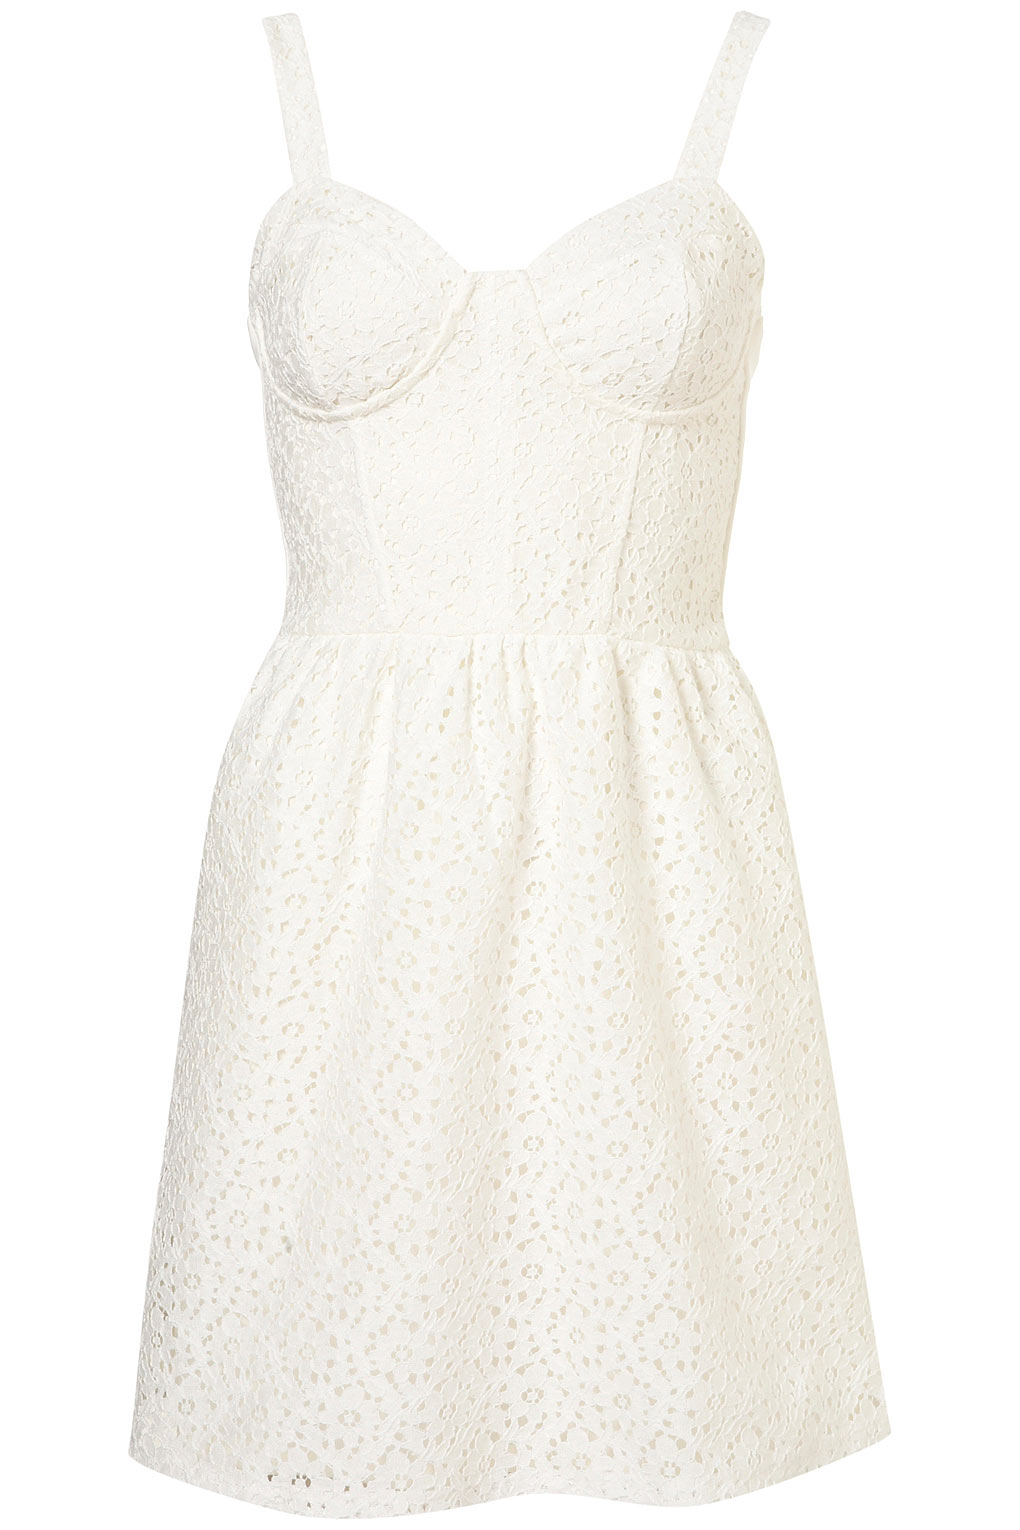 Topshop Lace Corset Flippy Tunic Dress in White | Lyst